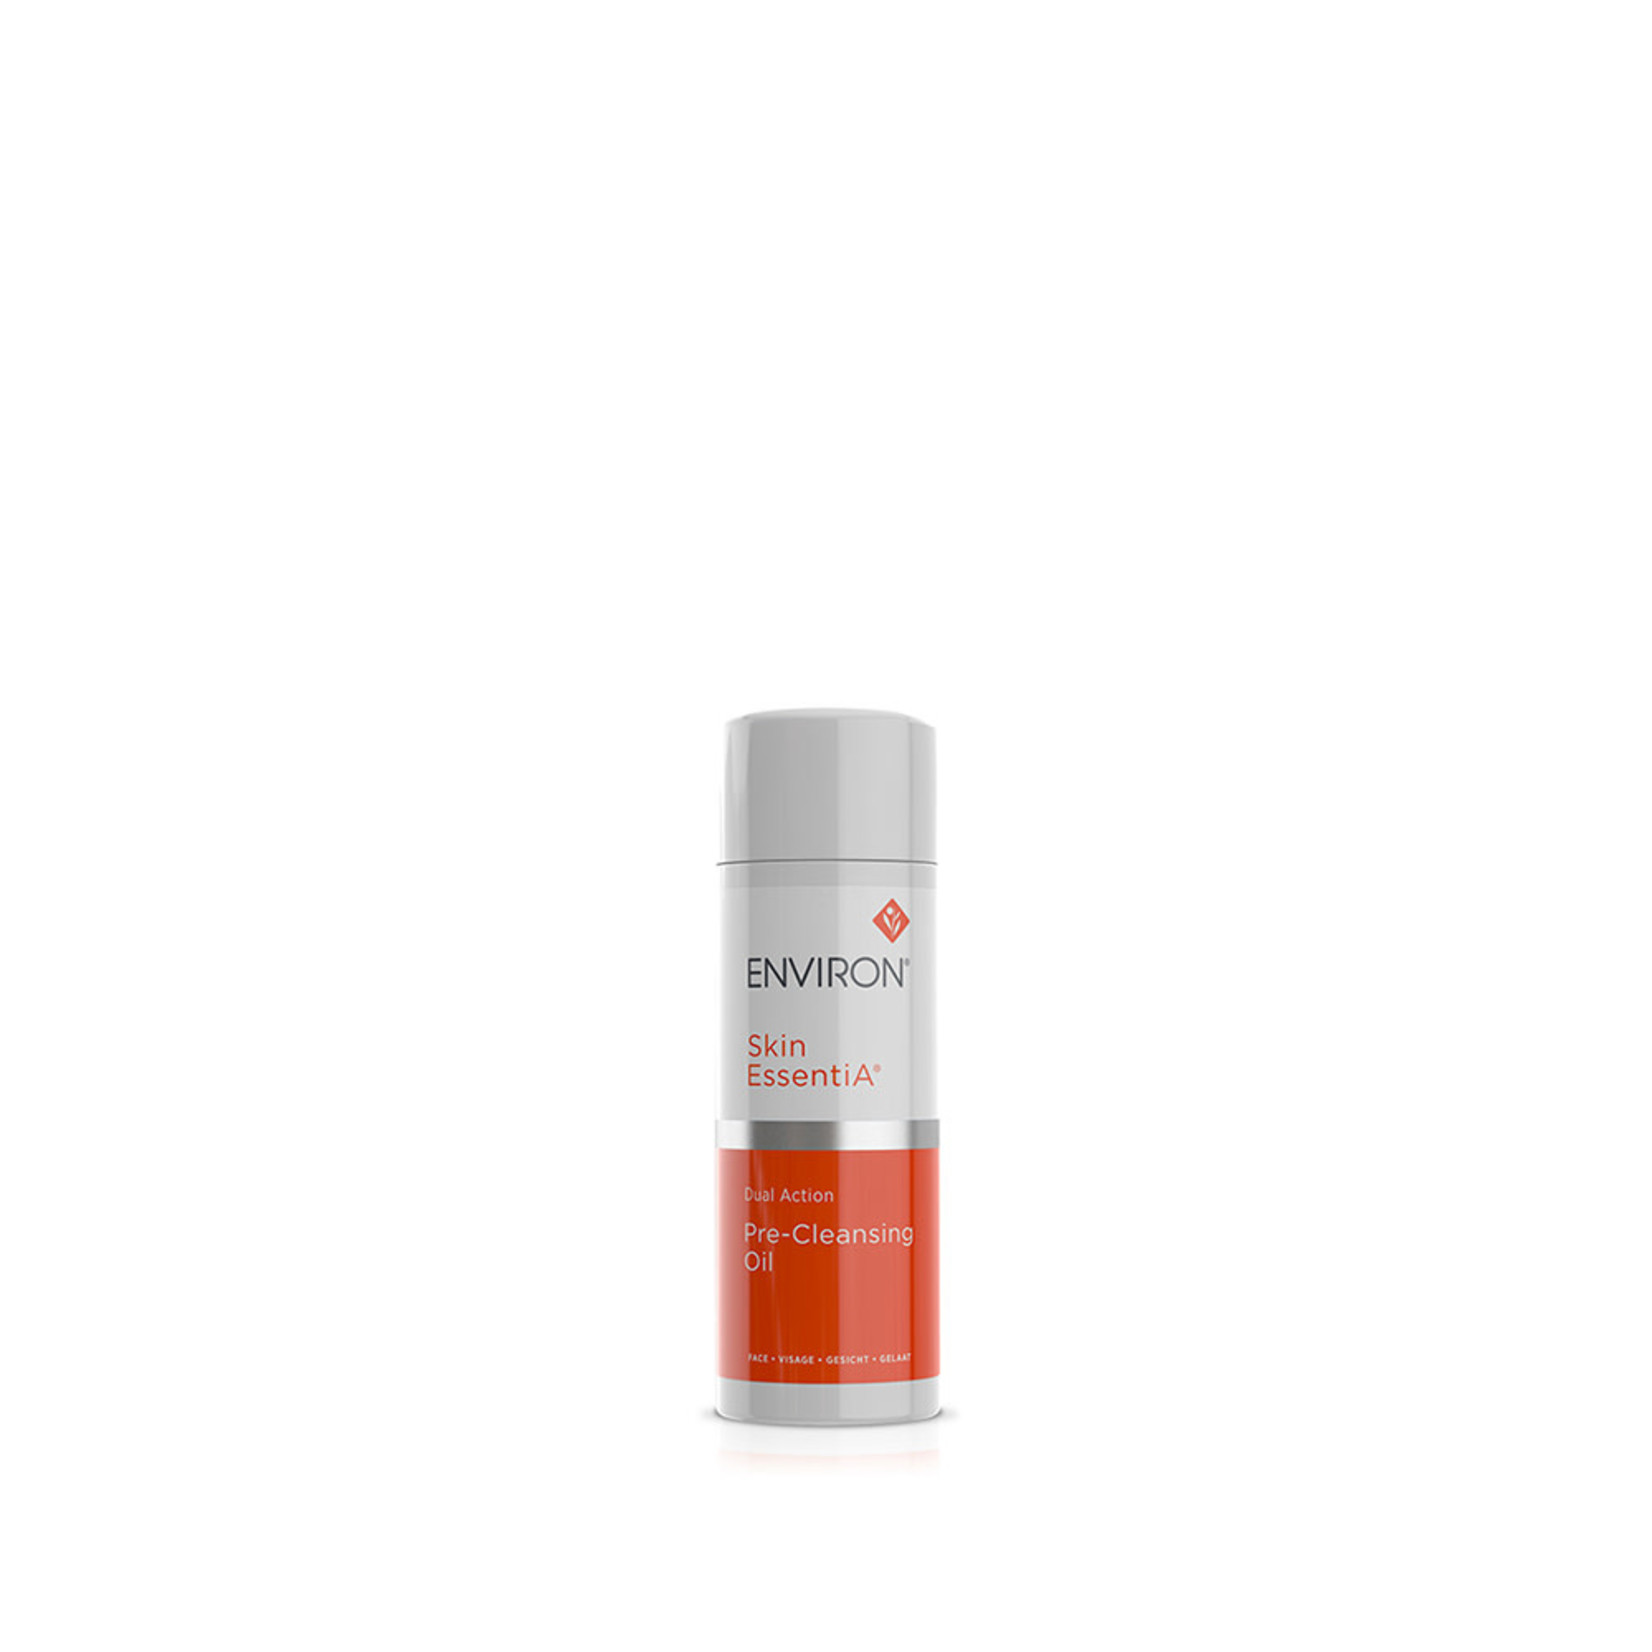 Environ Dual action pre-cleansing oil 100ml